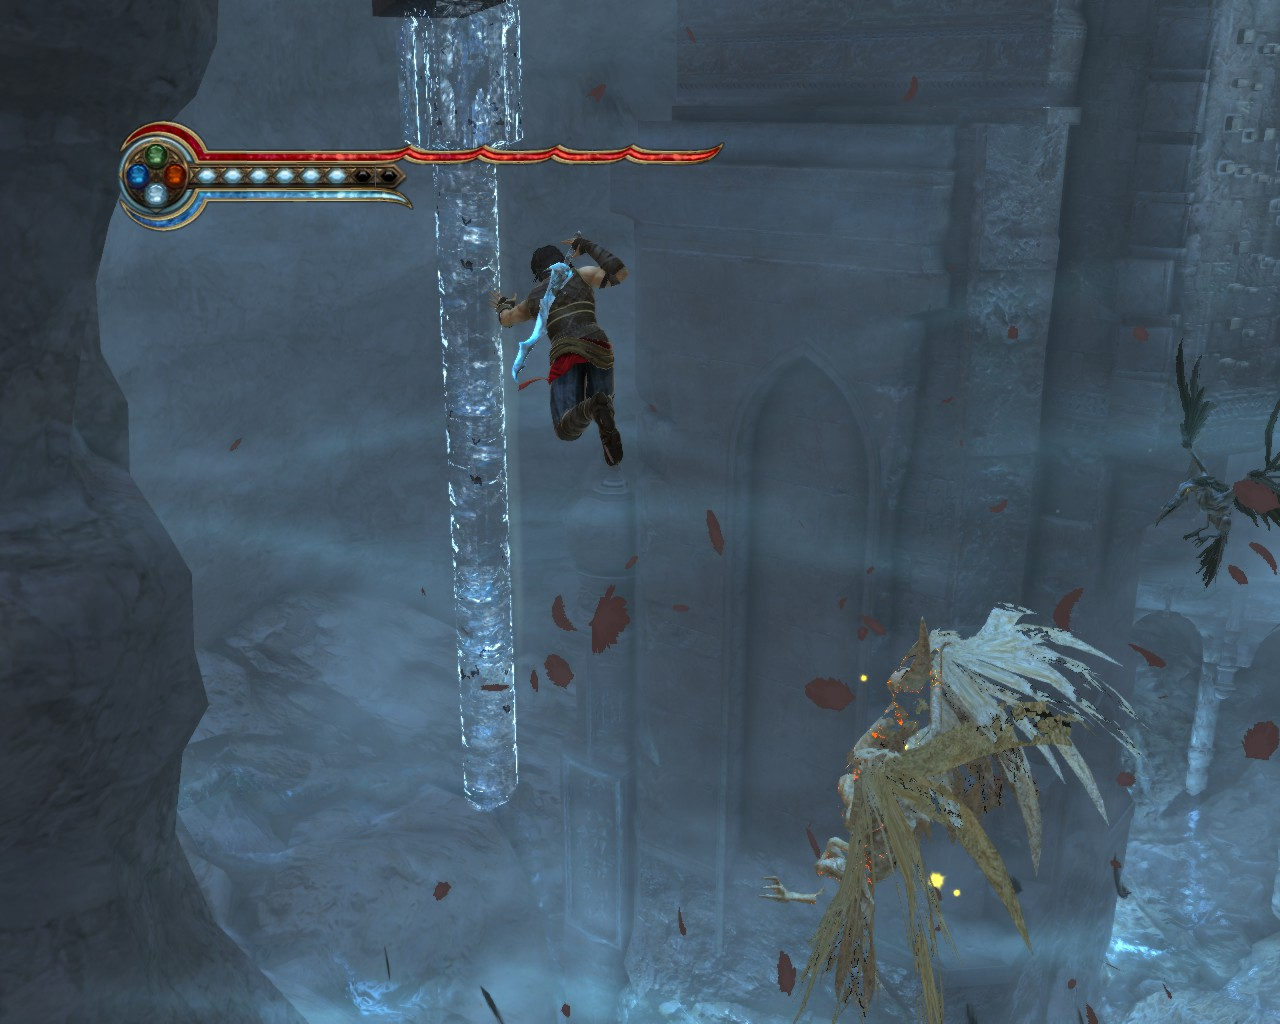 Prince of Persia 2014-06-04 19-55-05-16.jpg - Prince of Persia: The Forgotten Sands